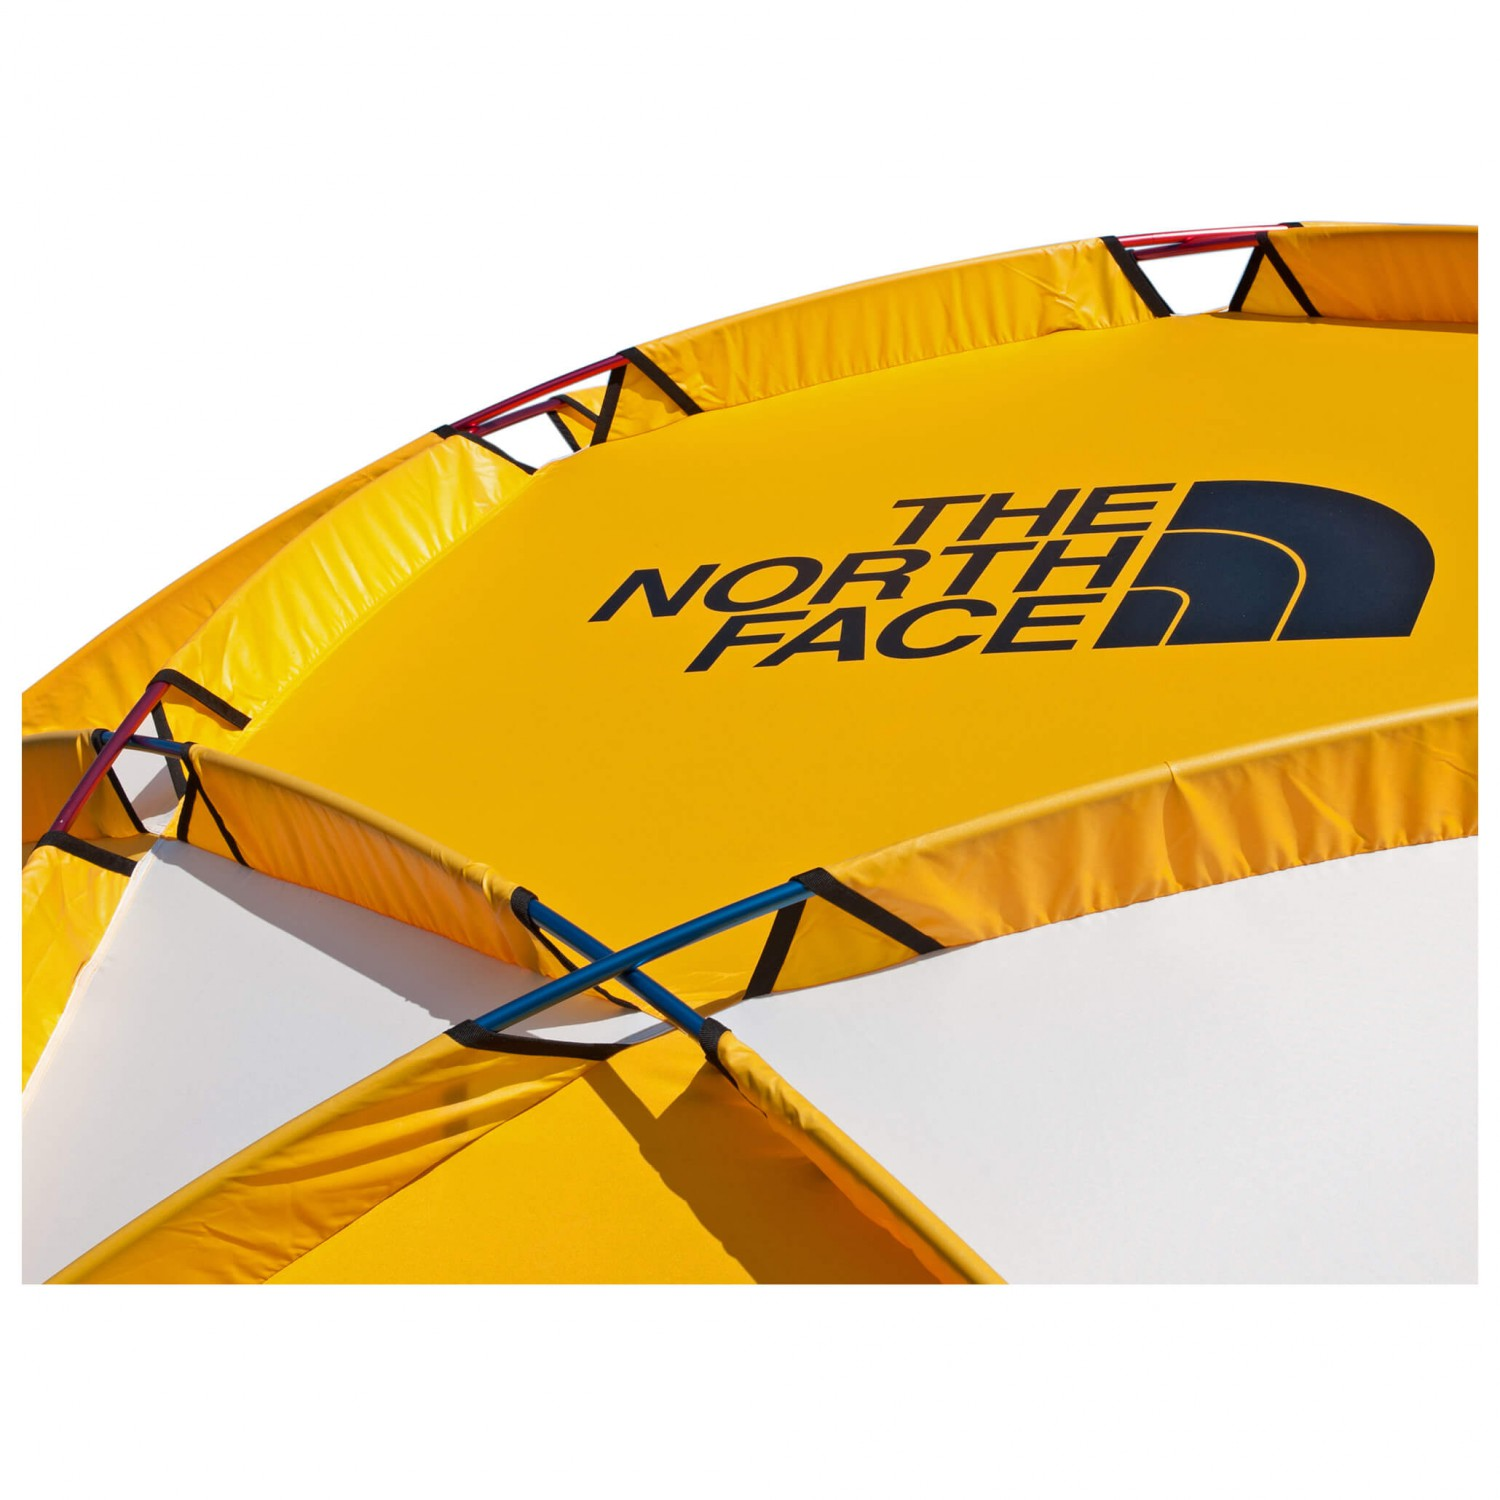 2 Meter The North Face 2 Meter Dome Gruppenzelt Gold White Black